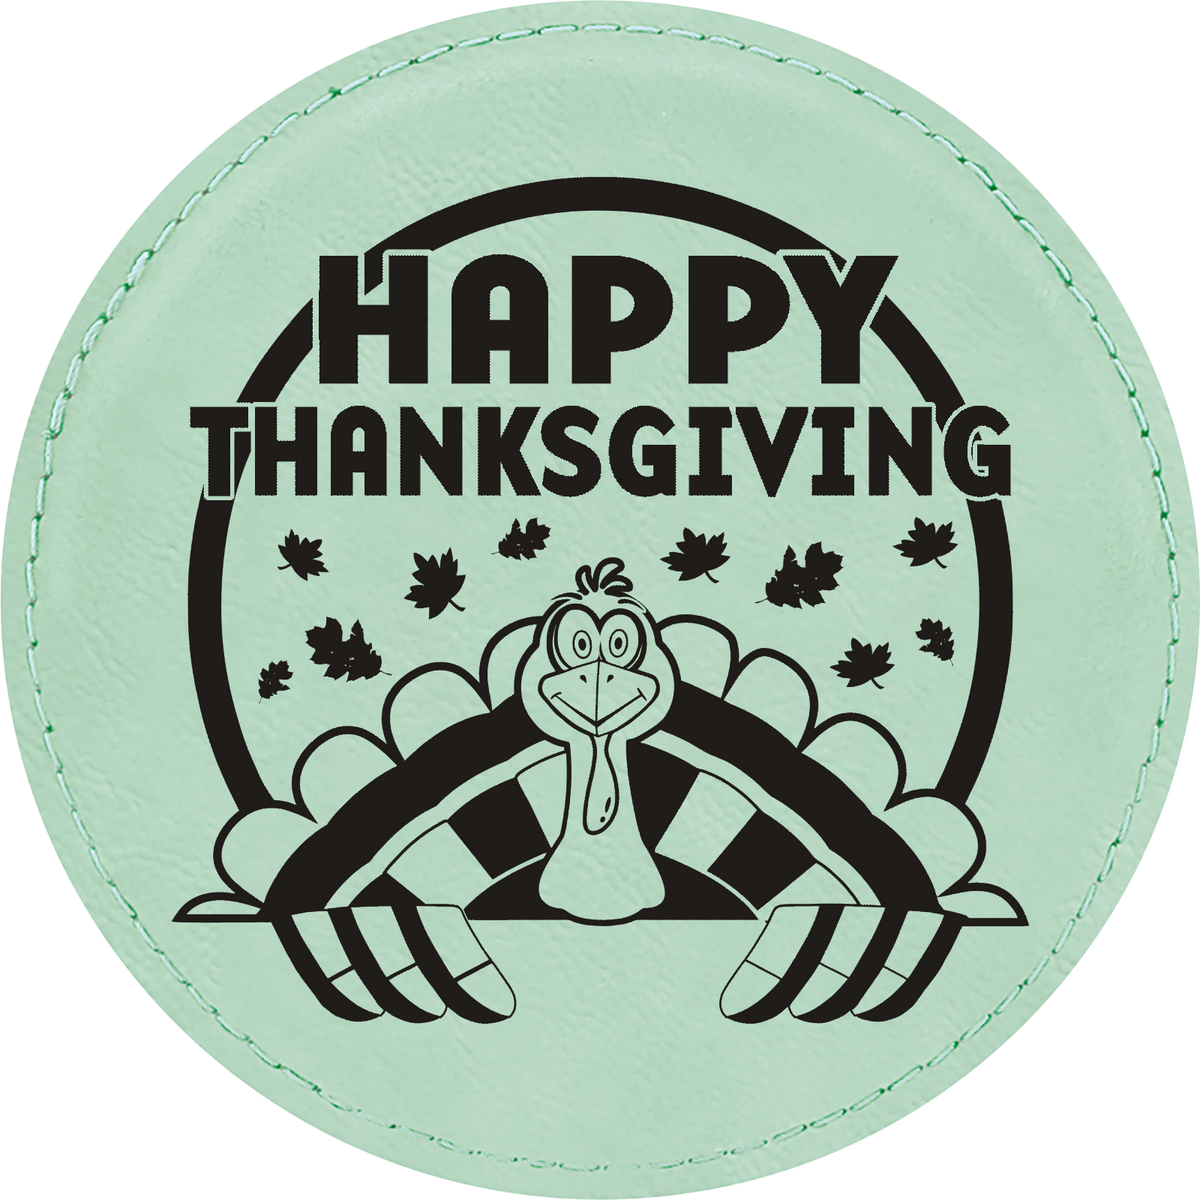 Happy Thanksgiving - Leatherette Round Coasters (Set of 6)